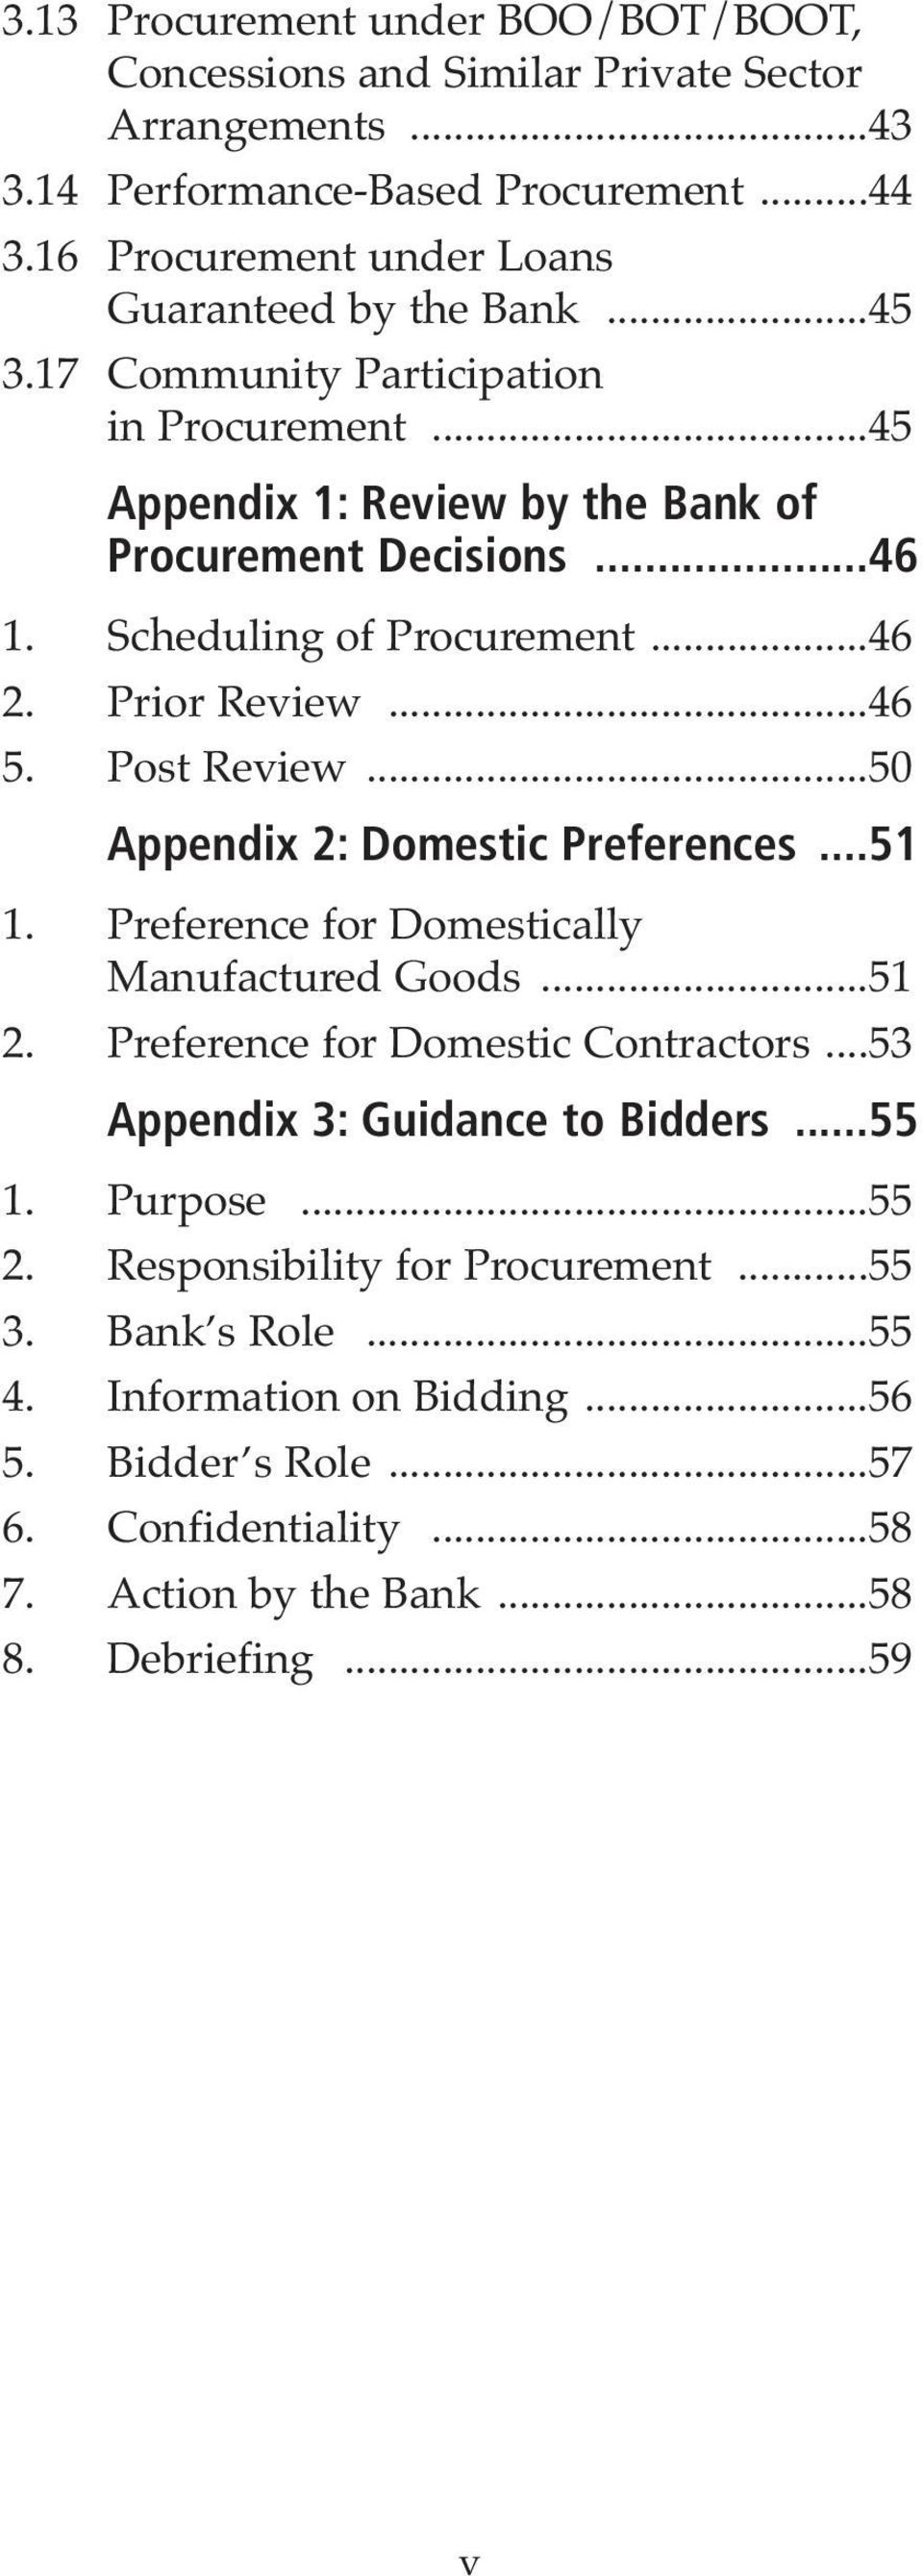 ..50 Appendix 2: Domestic Preferences...51 1. Preference for Domestically Manufactured Goods...51 2. Preference for Domestic Contractors...53 Appendix 3: Guidance to Bidders...55 1.